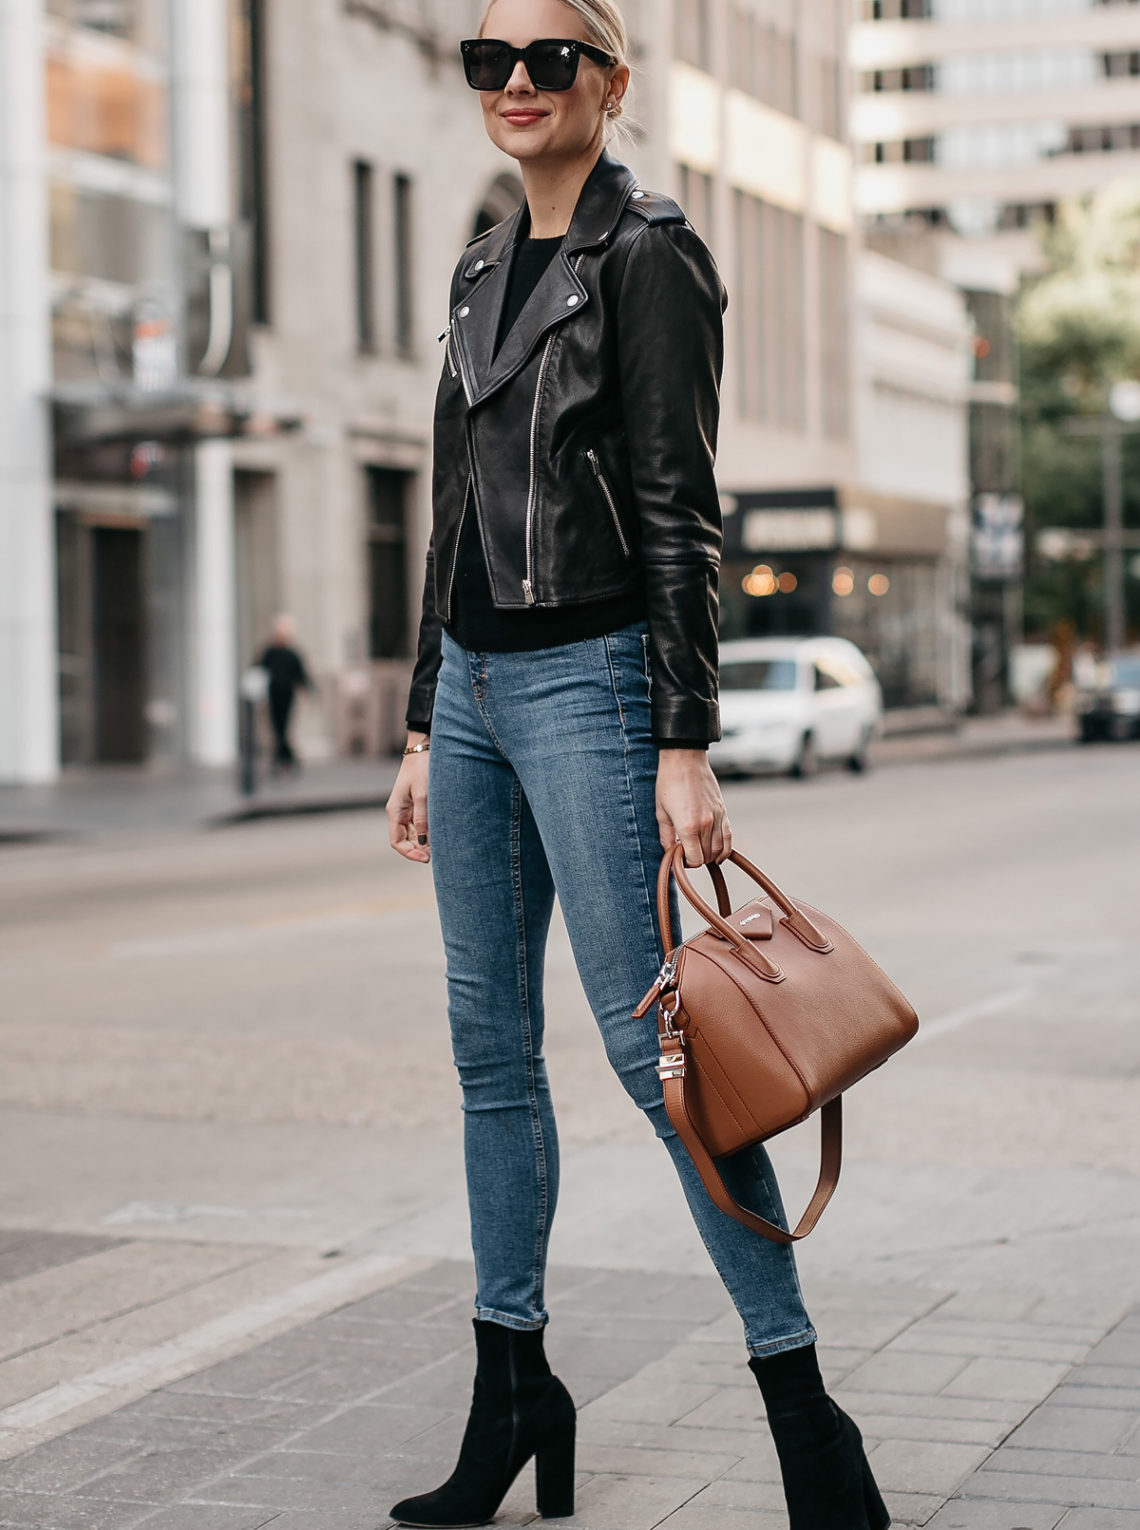 Blonde Woman Wearing Black Leather Jacket Denim Skinny Jeans Black Booties Givencny Antigona Cognac Satchel Fashion Jackson Dallas Blogger Fashion Blogger Street Style